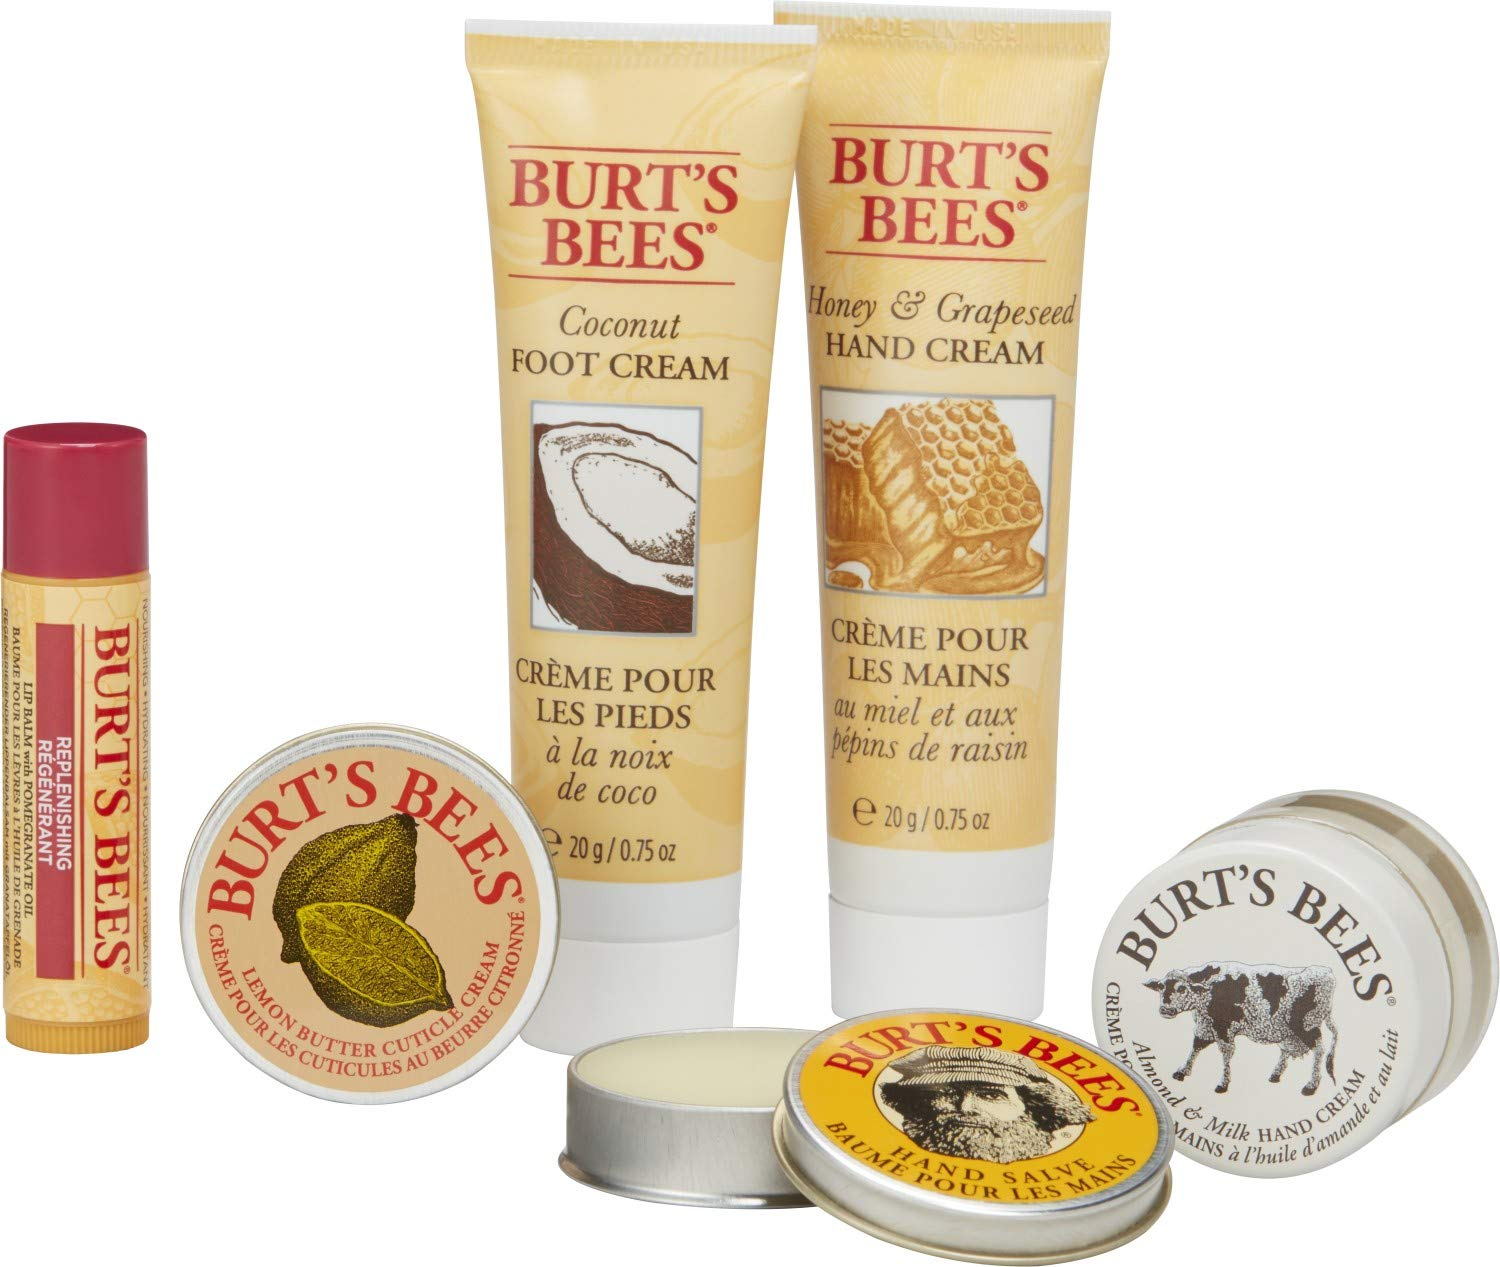 Burts Bees Skincare and Lipcare items